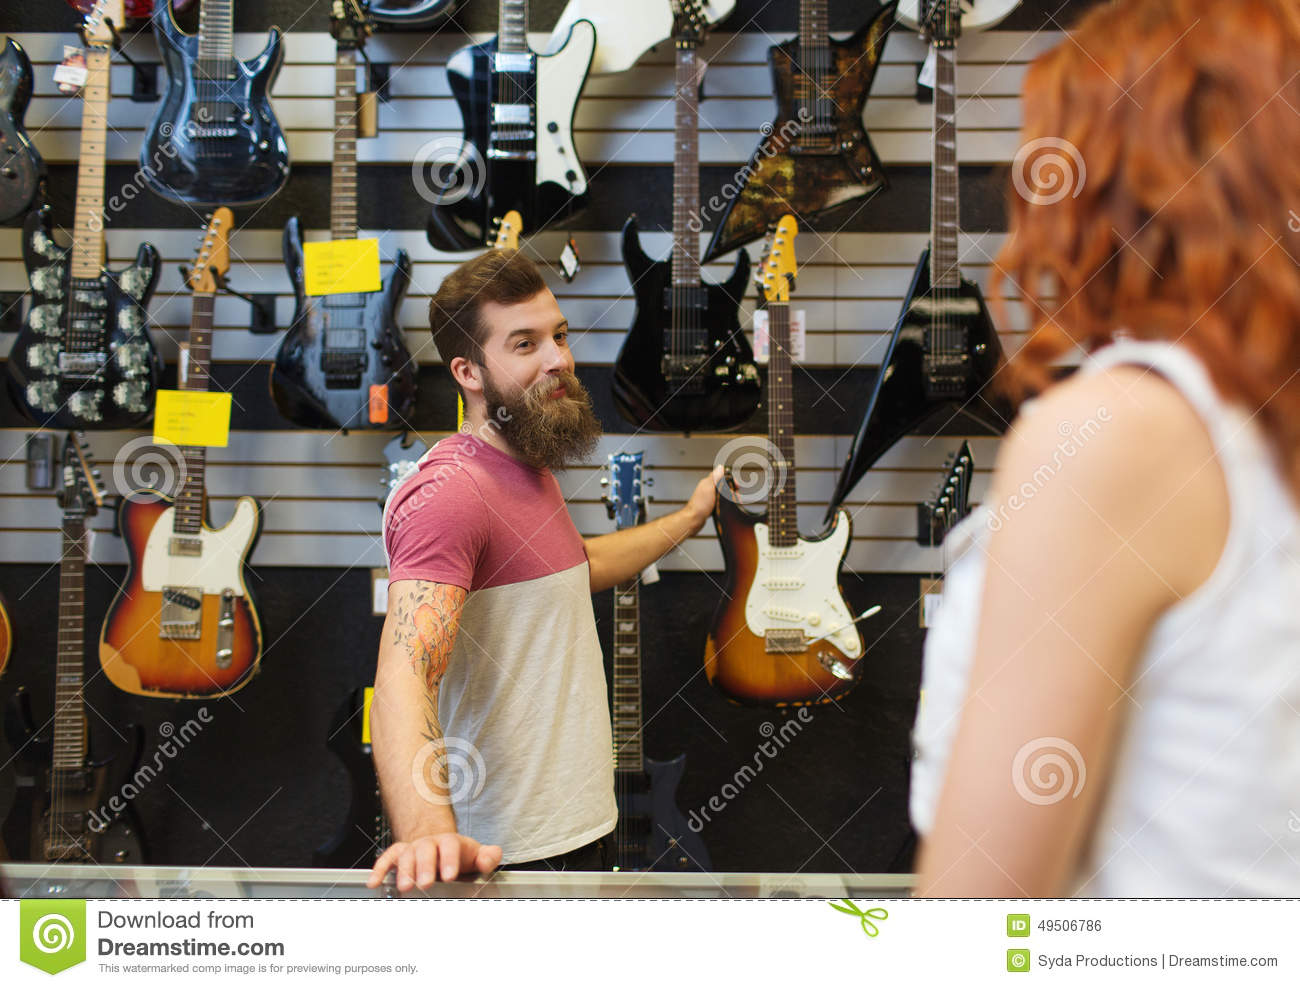 assistant or customer beard at music store stock photo assistant showing customer guitar at music store royalty stock image